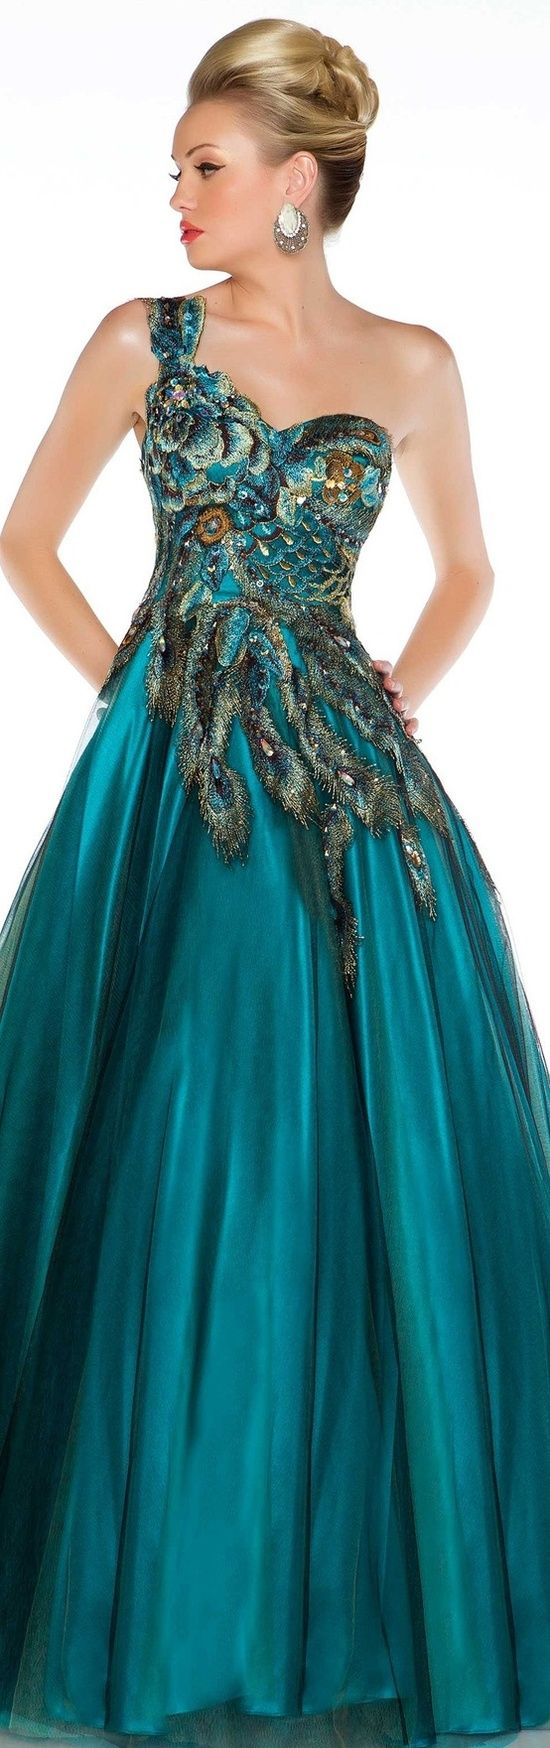 39 best Style images on Pinterest | Party outfits, Sweet dress and ...